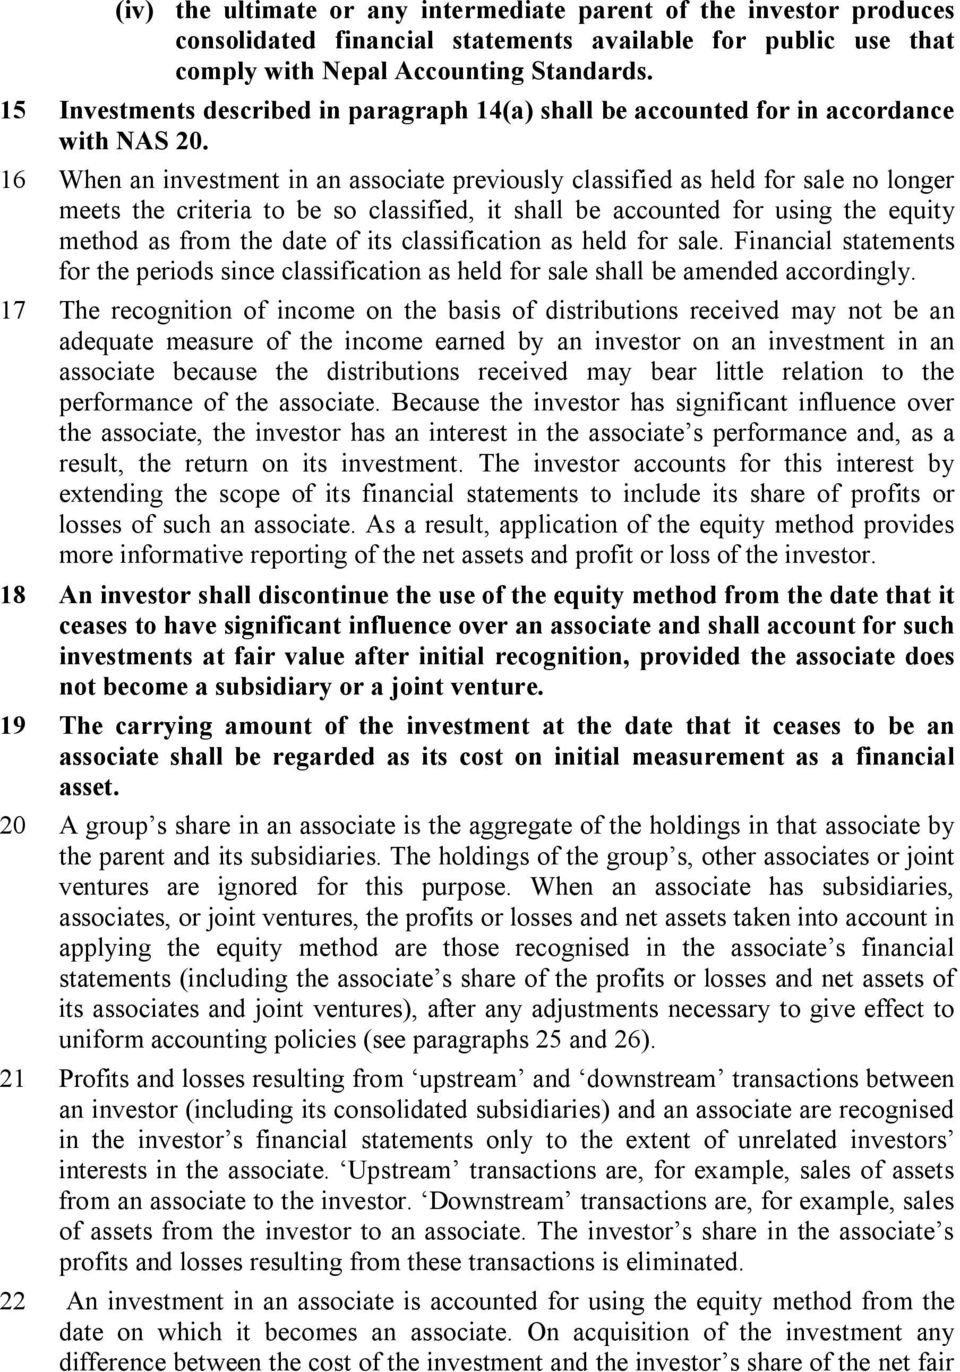 16 When an investment in an associate previously classified as held for sale no longer meets the criteria to be so classified, it shall be accounted for using the equity method as from the date of